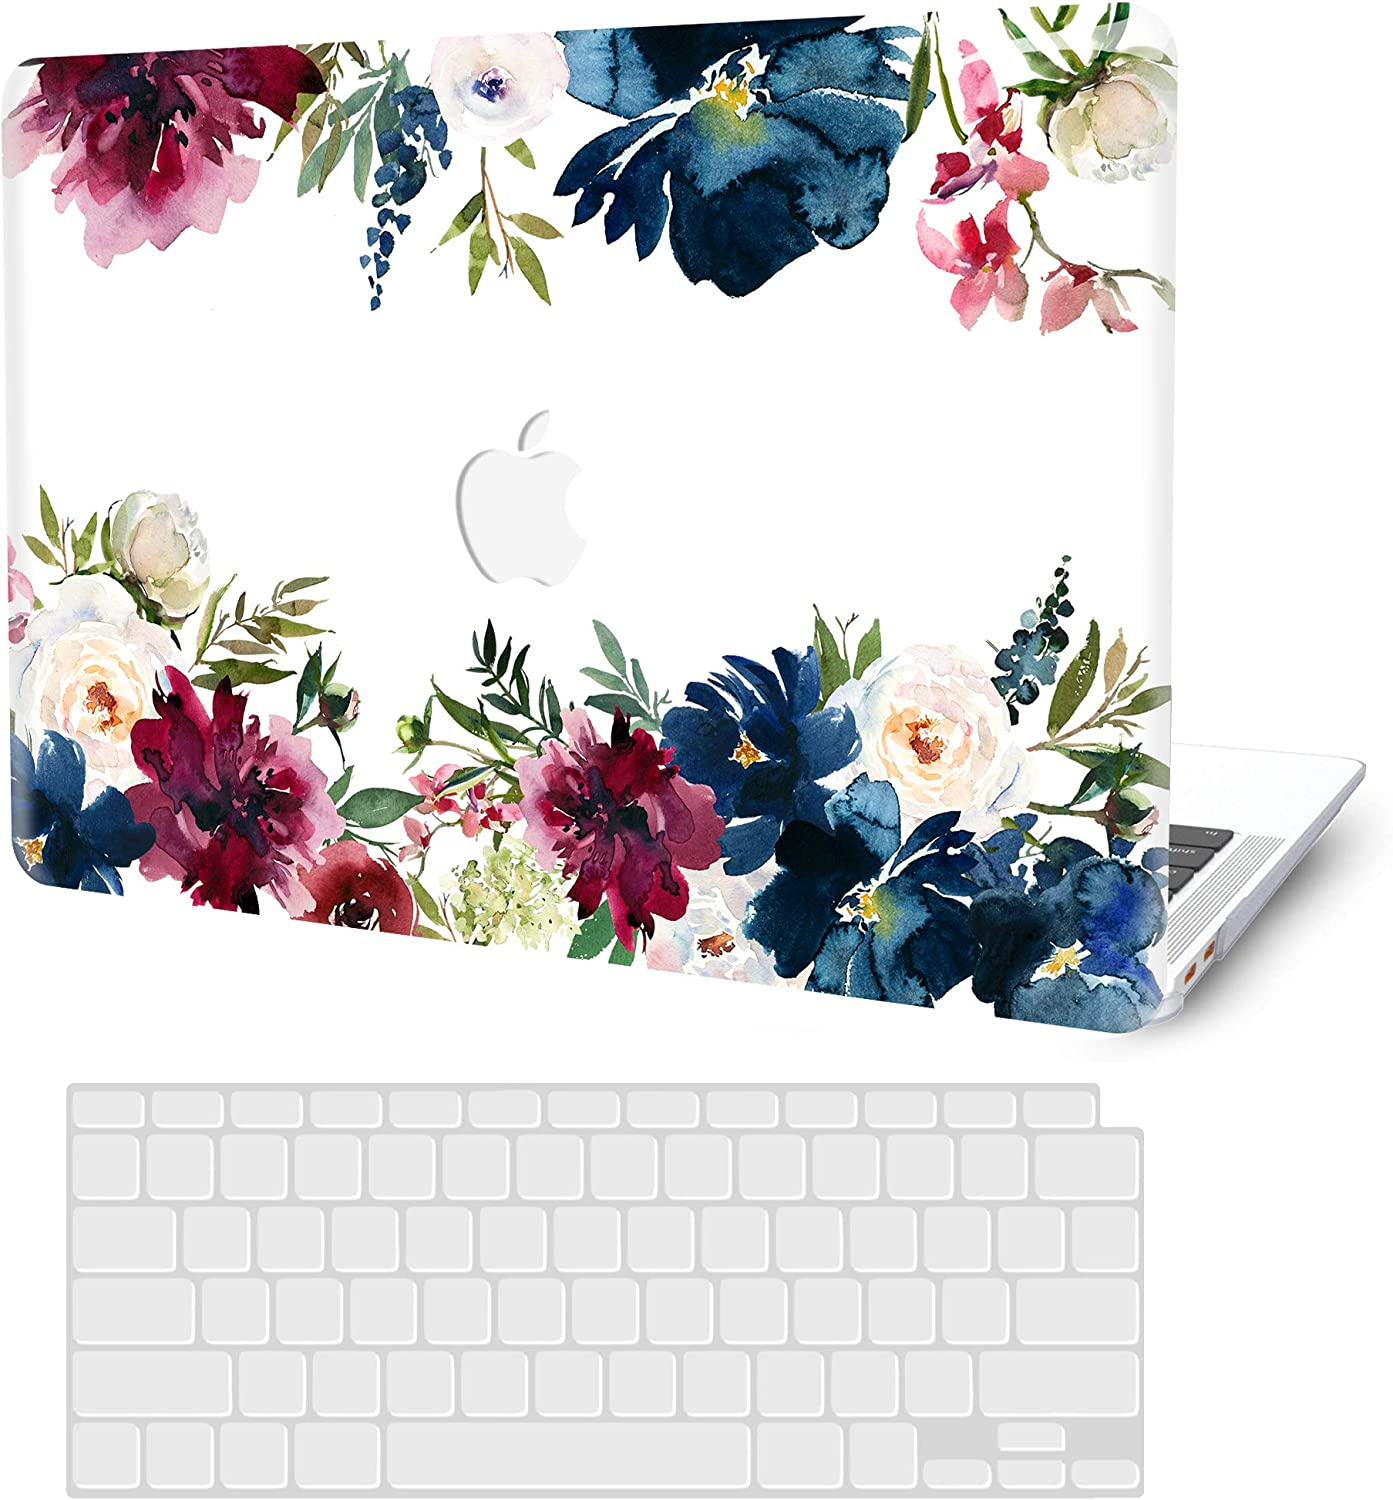 MacBook Air 13 inch Case 2020 2019 2018 Release A2179 A1932, G JGOO MacBook Air 2020 Case, Plastic Hard Shell Case + Keyboard Cover for Apple Mac Air 13.3 with Retina Display & Touch ID, Ink Flower